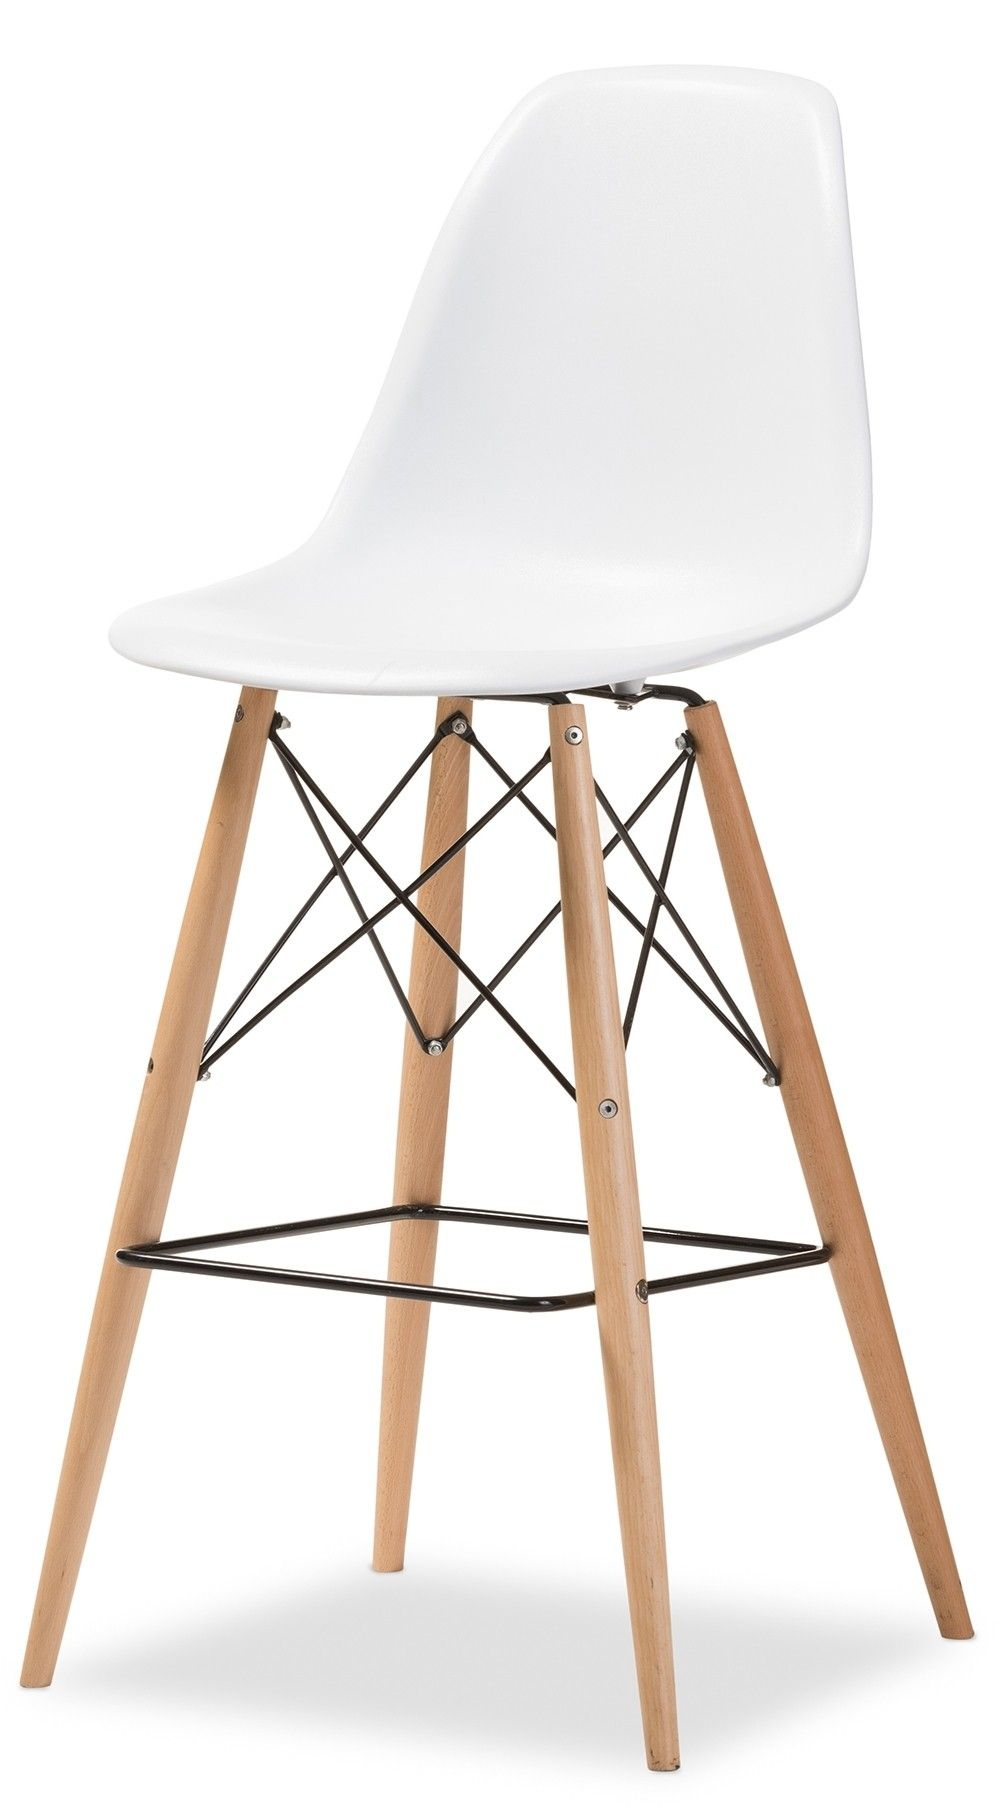 Distinctly Mid Century Modern This Bar Chair Features A White Molded Seat Light Wood Angled Legs And Black Metal Accents Bar Stools Bar Chairs Counter Stools